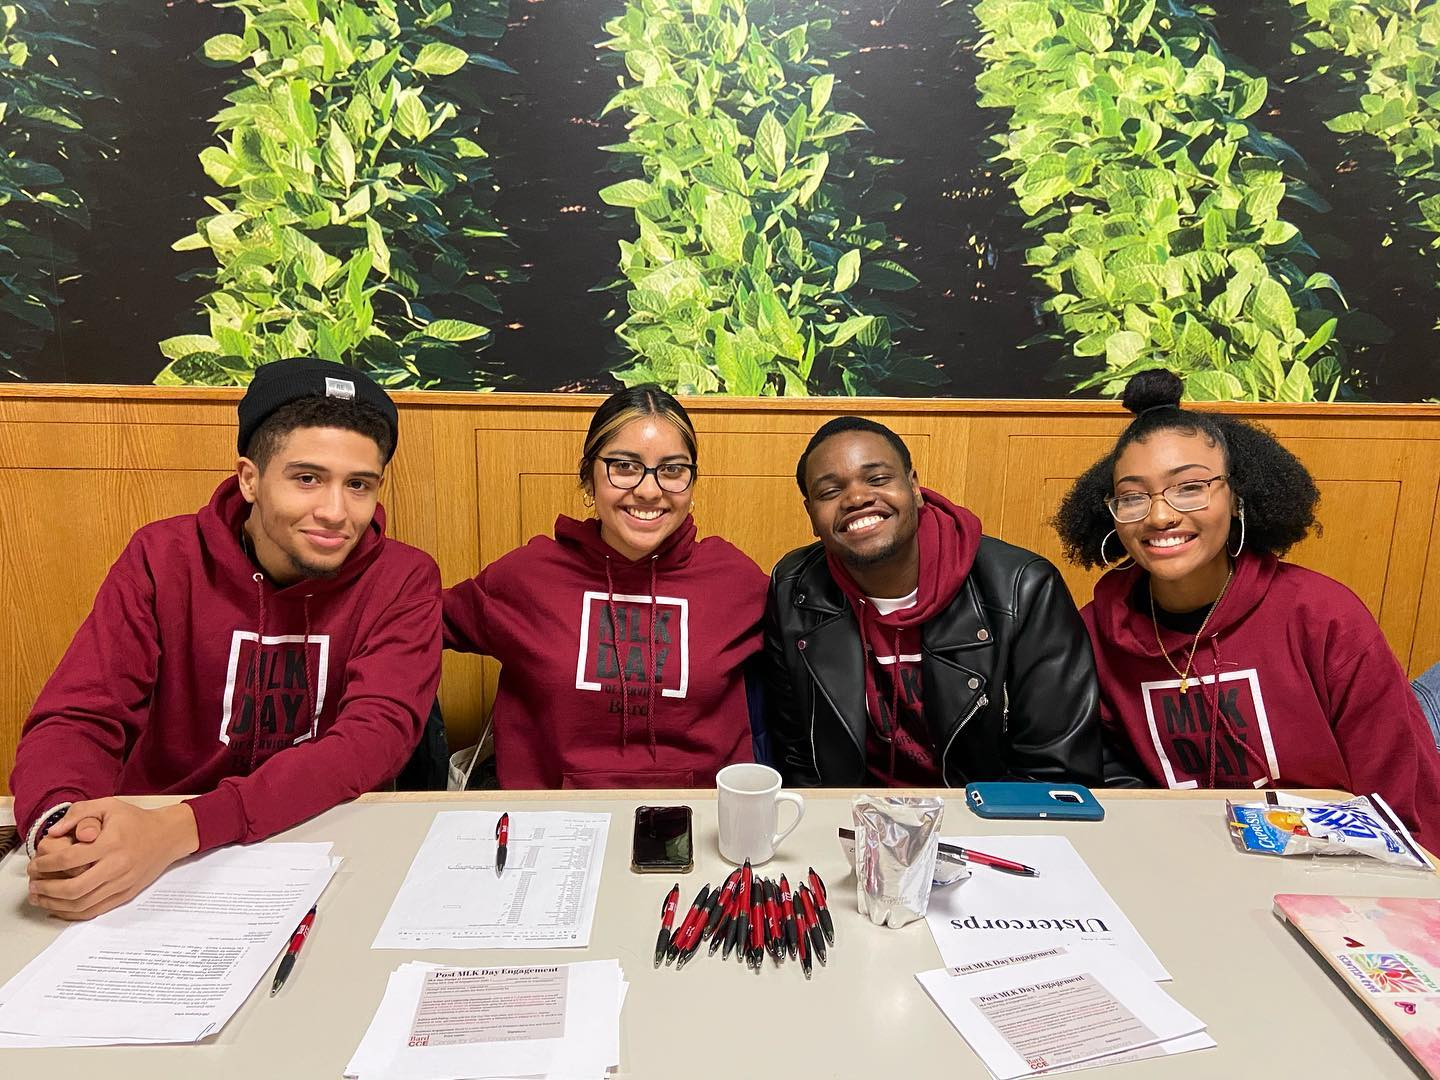 MLK Day student team checks in Bard volunteers on Saturday morning, January 18, in Kline Commons.